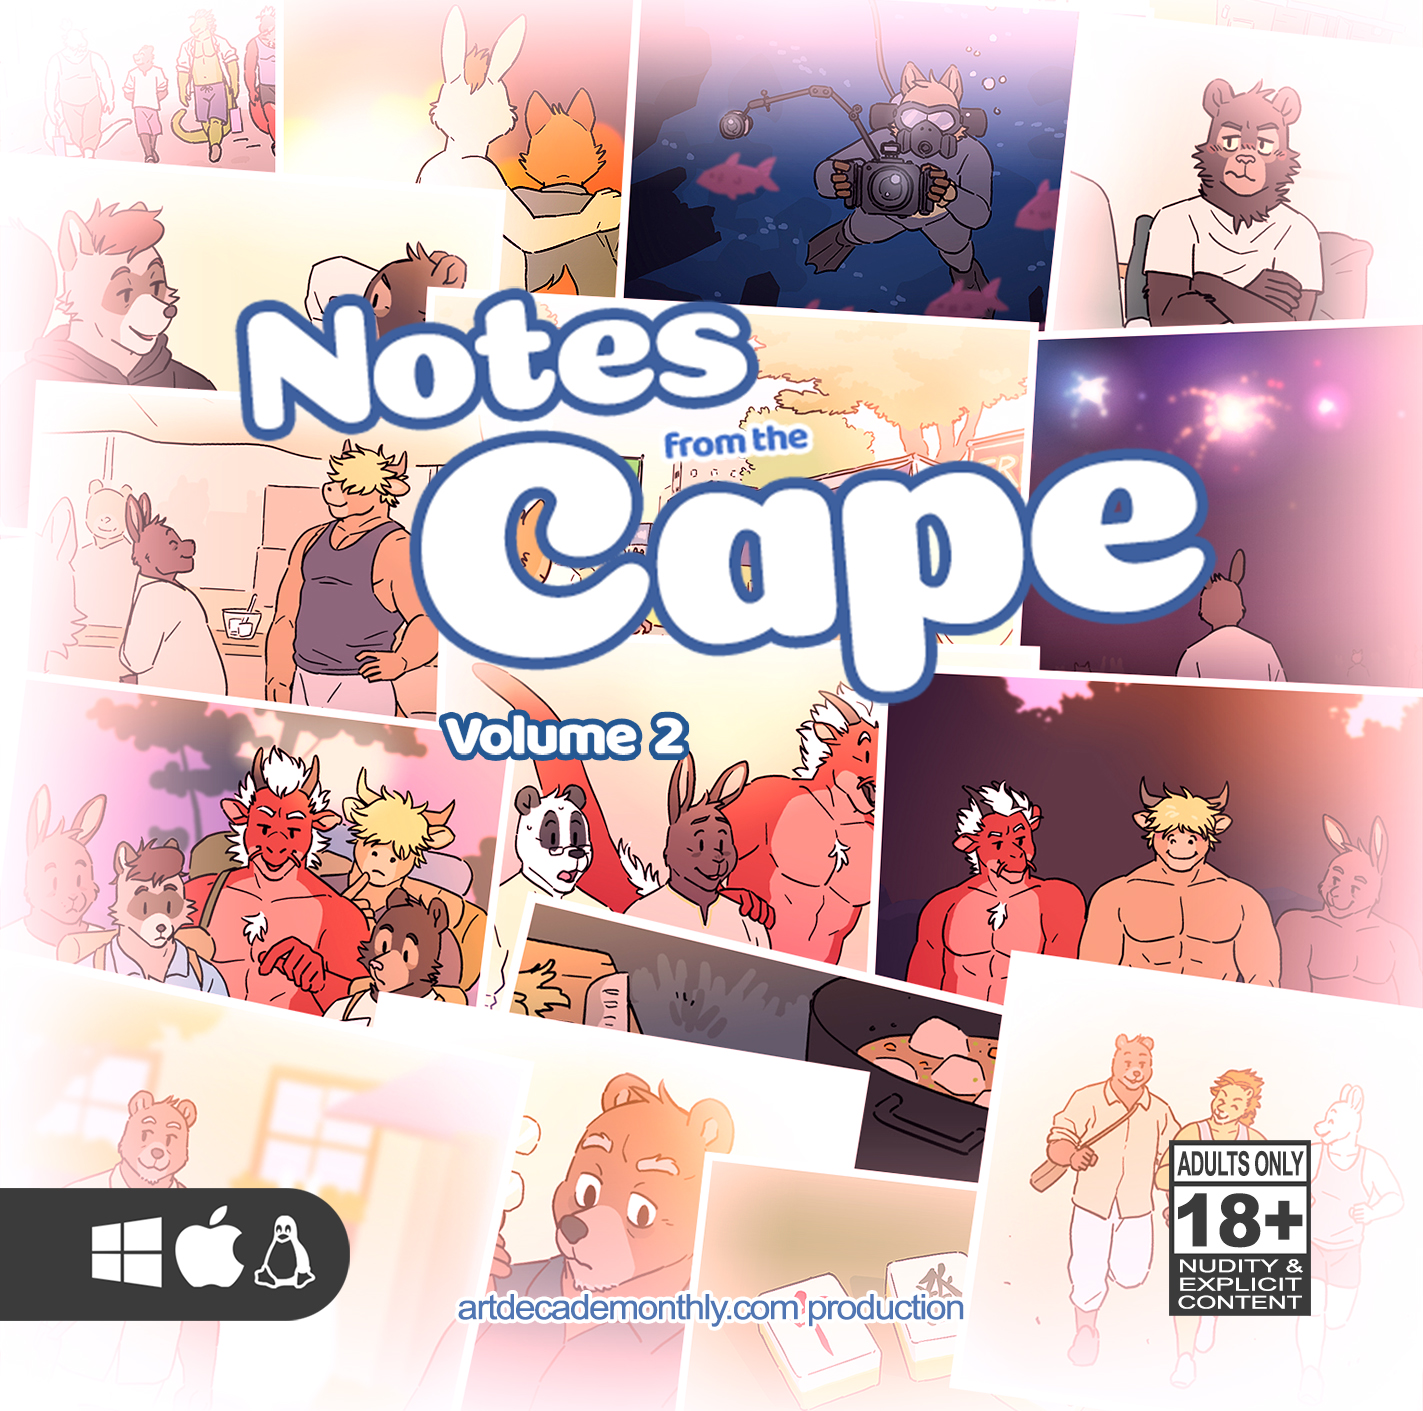 Notes from the Cape Volume 2